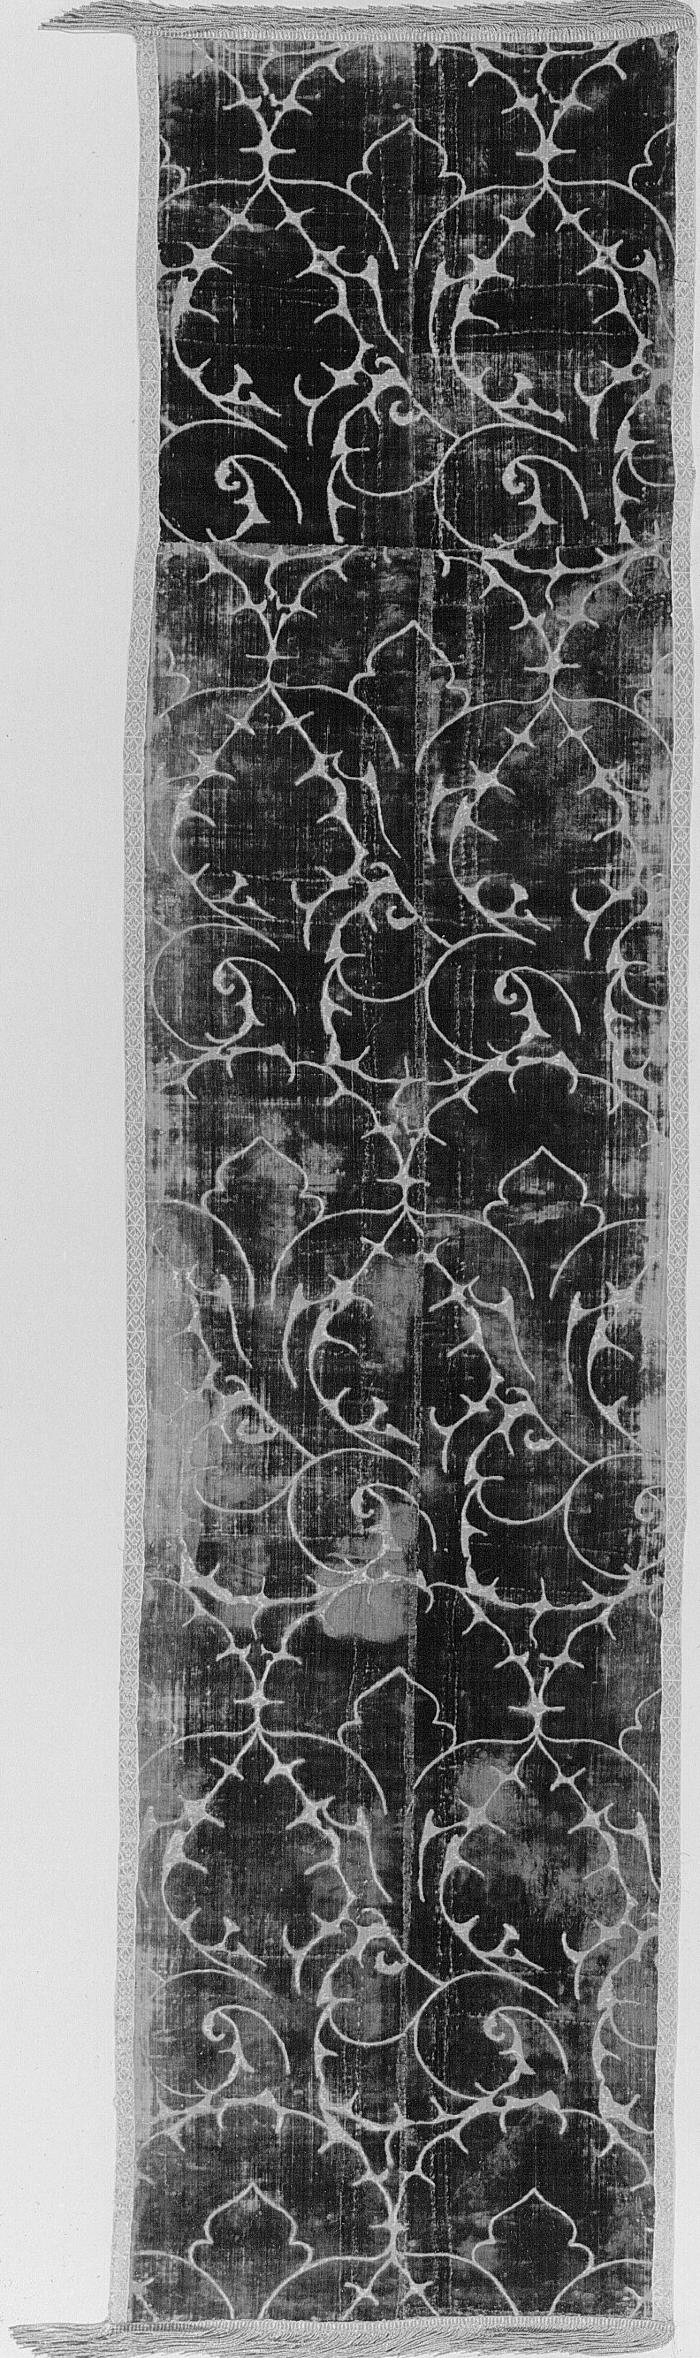 Image for Voided velvet panel, ferronerie type with violet pile and grey ground